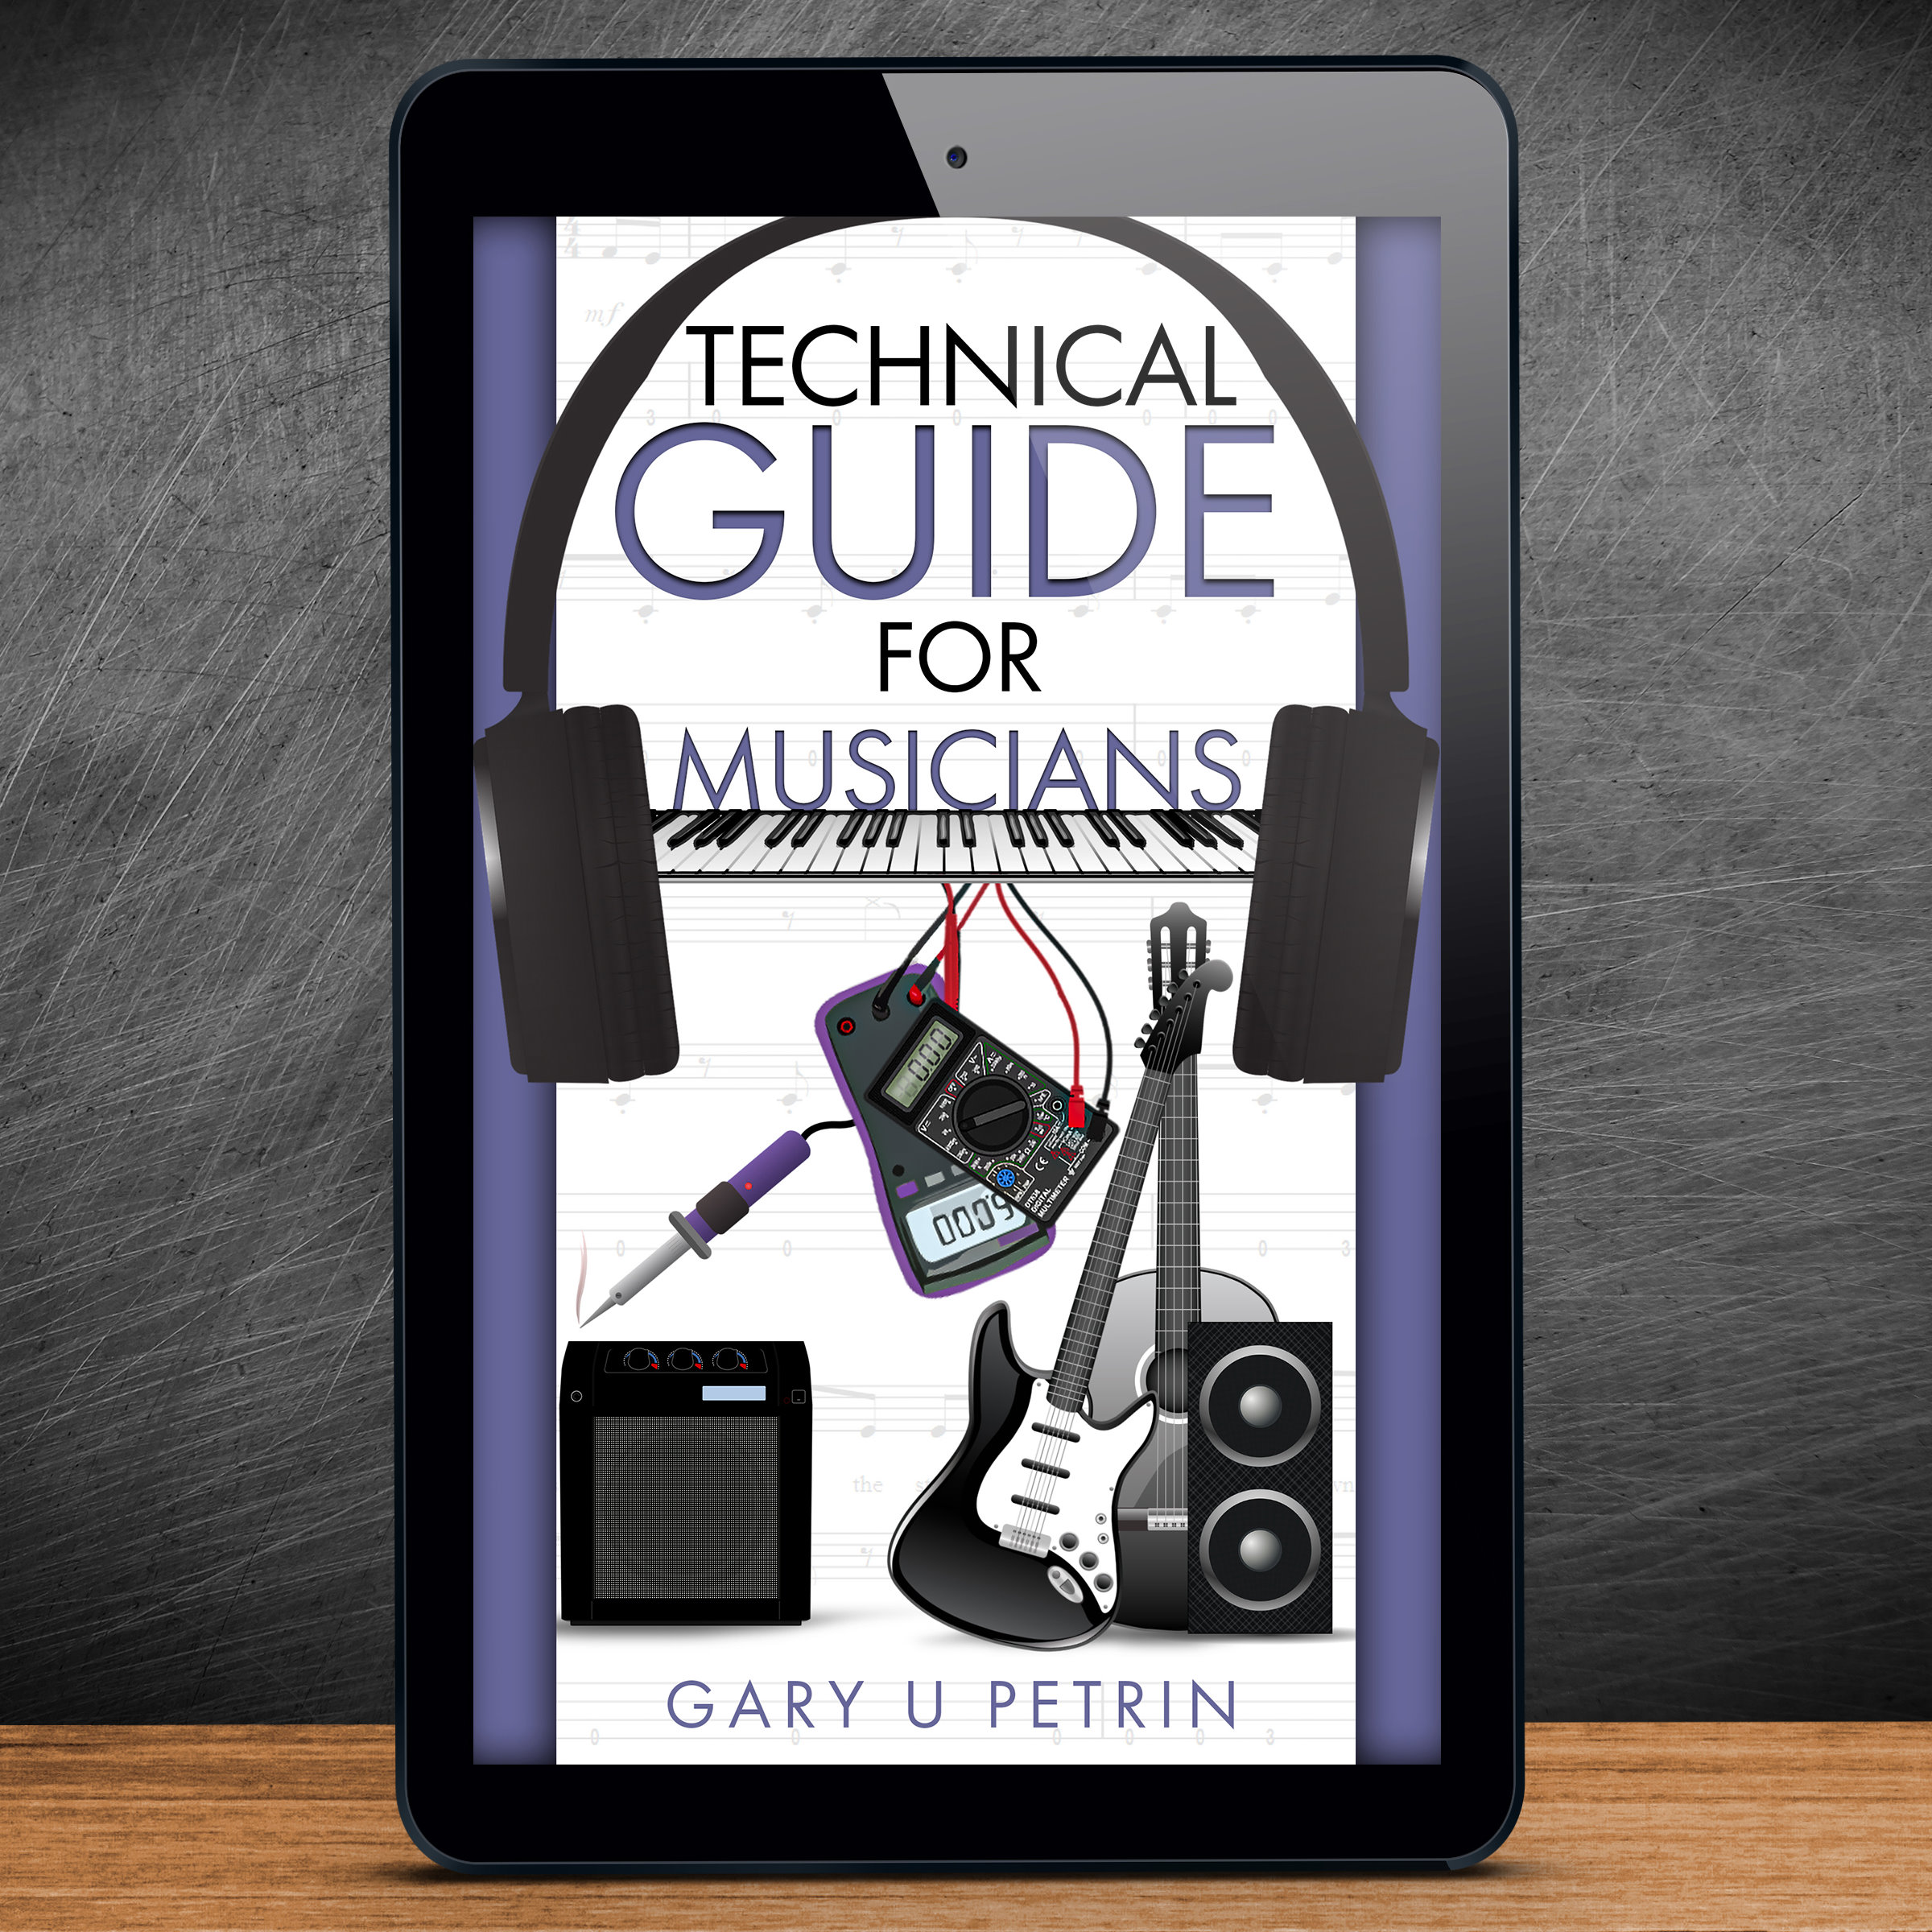 Technical Guide for Musicians